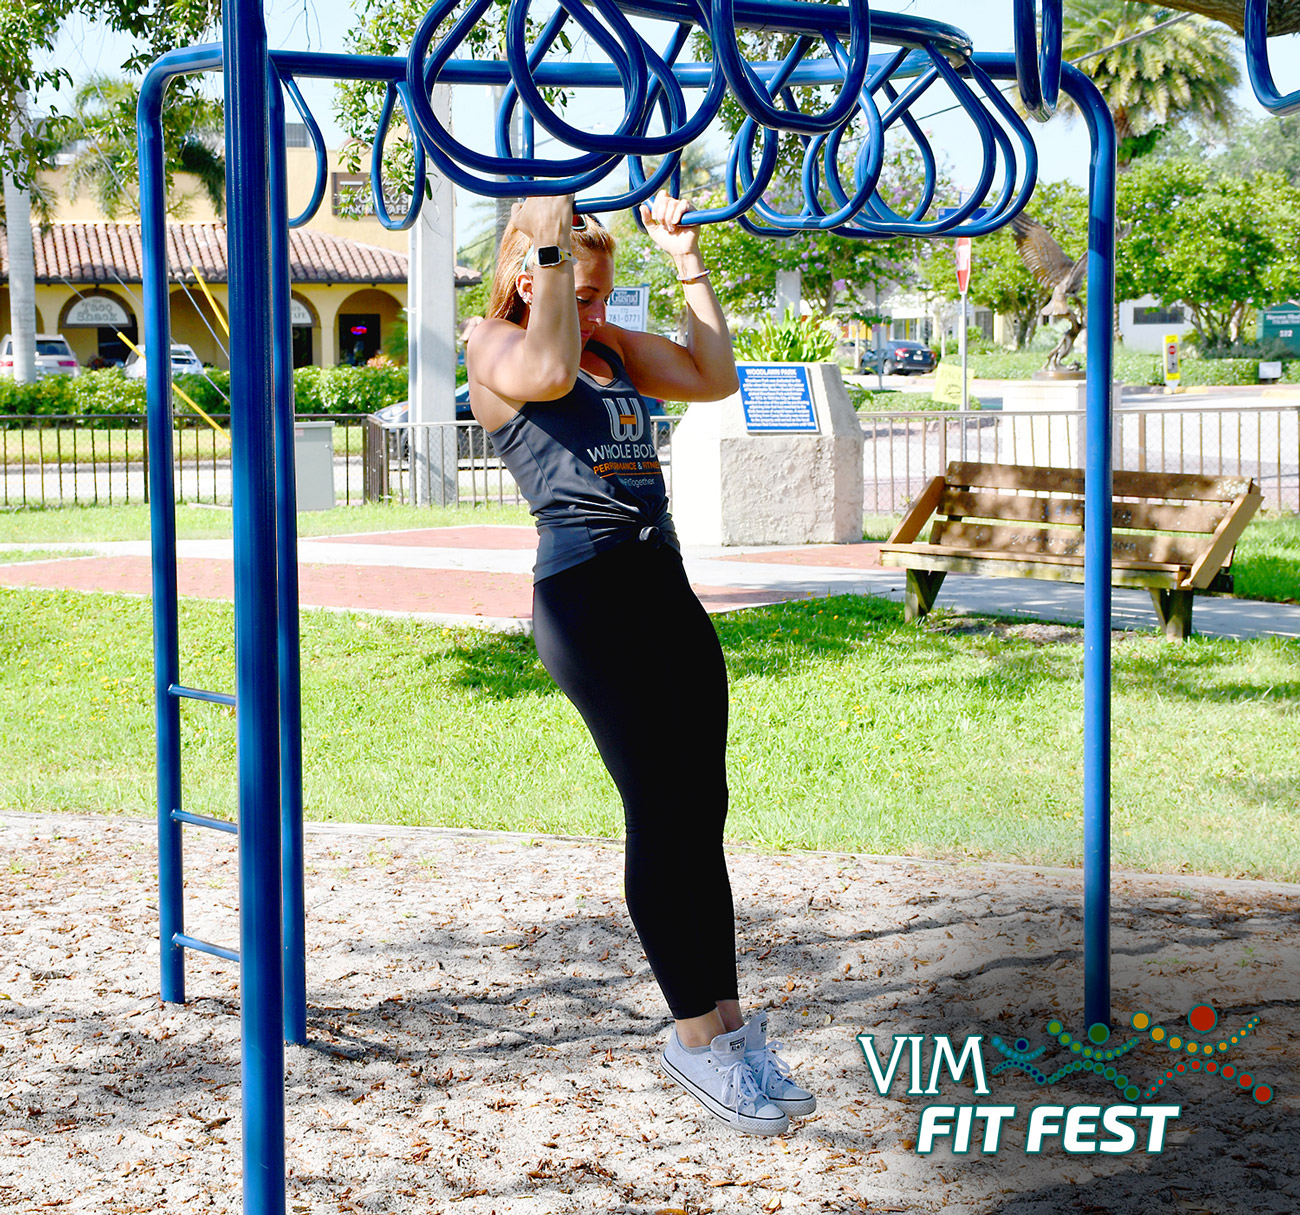 #VIMFITFEST Welcome to Week 4 of VIM Fit Fest, a virtual wellness experience celebrating Volunteers in Medicine (VIM) Clinic's 25th Anniversary! We've amped up the challenge this week with Amanda Michel from Whole Body Performance and Fitness. She'll lead us through the workout at Kiwanis Park in downtown Stuart.